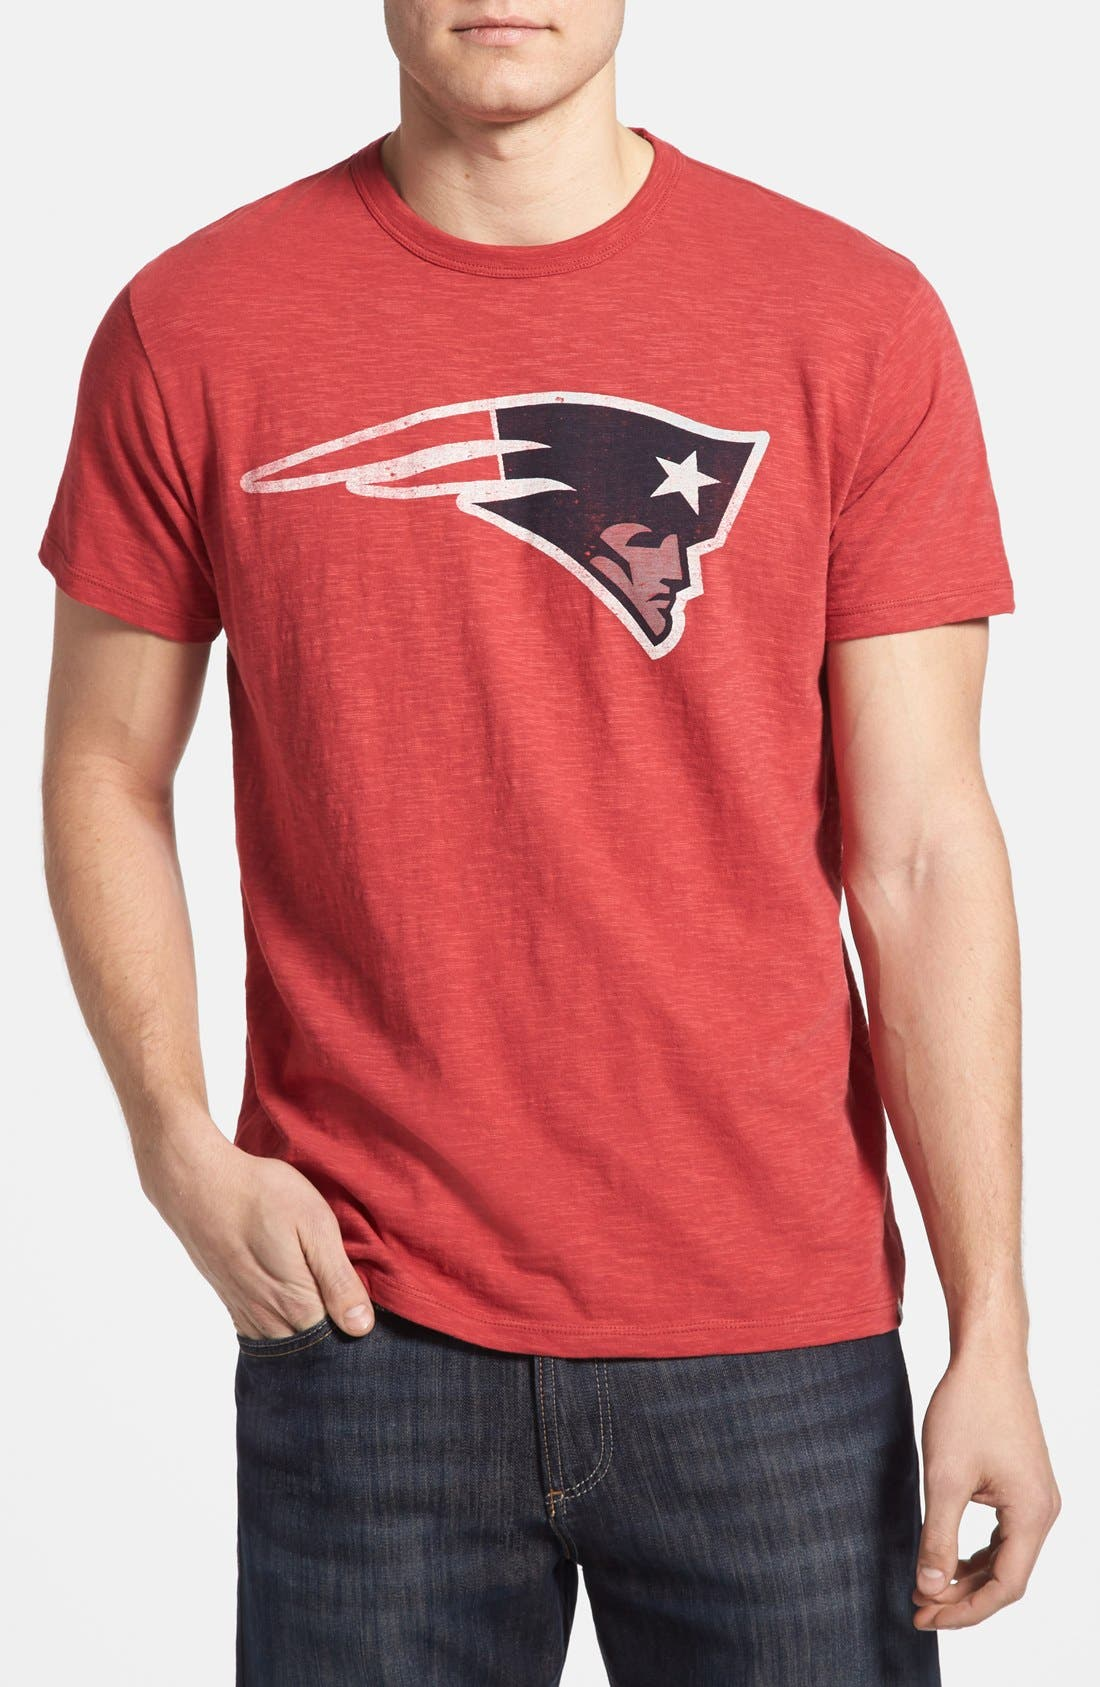 Main Image - '47 'New England Patriots - Scrum' Graphic T-Shirt